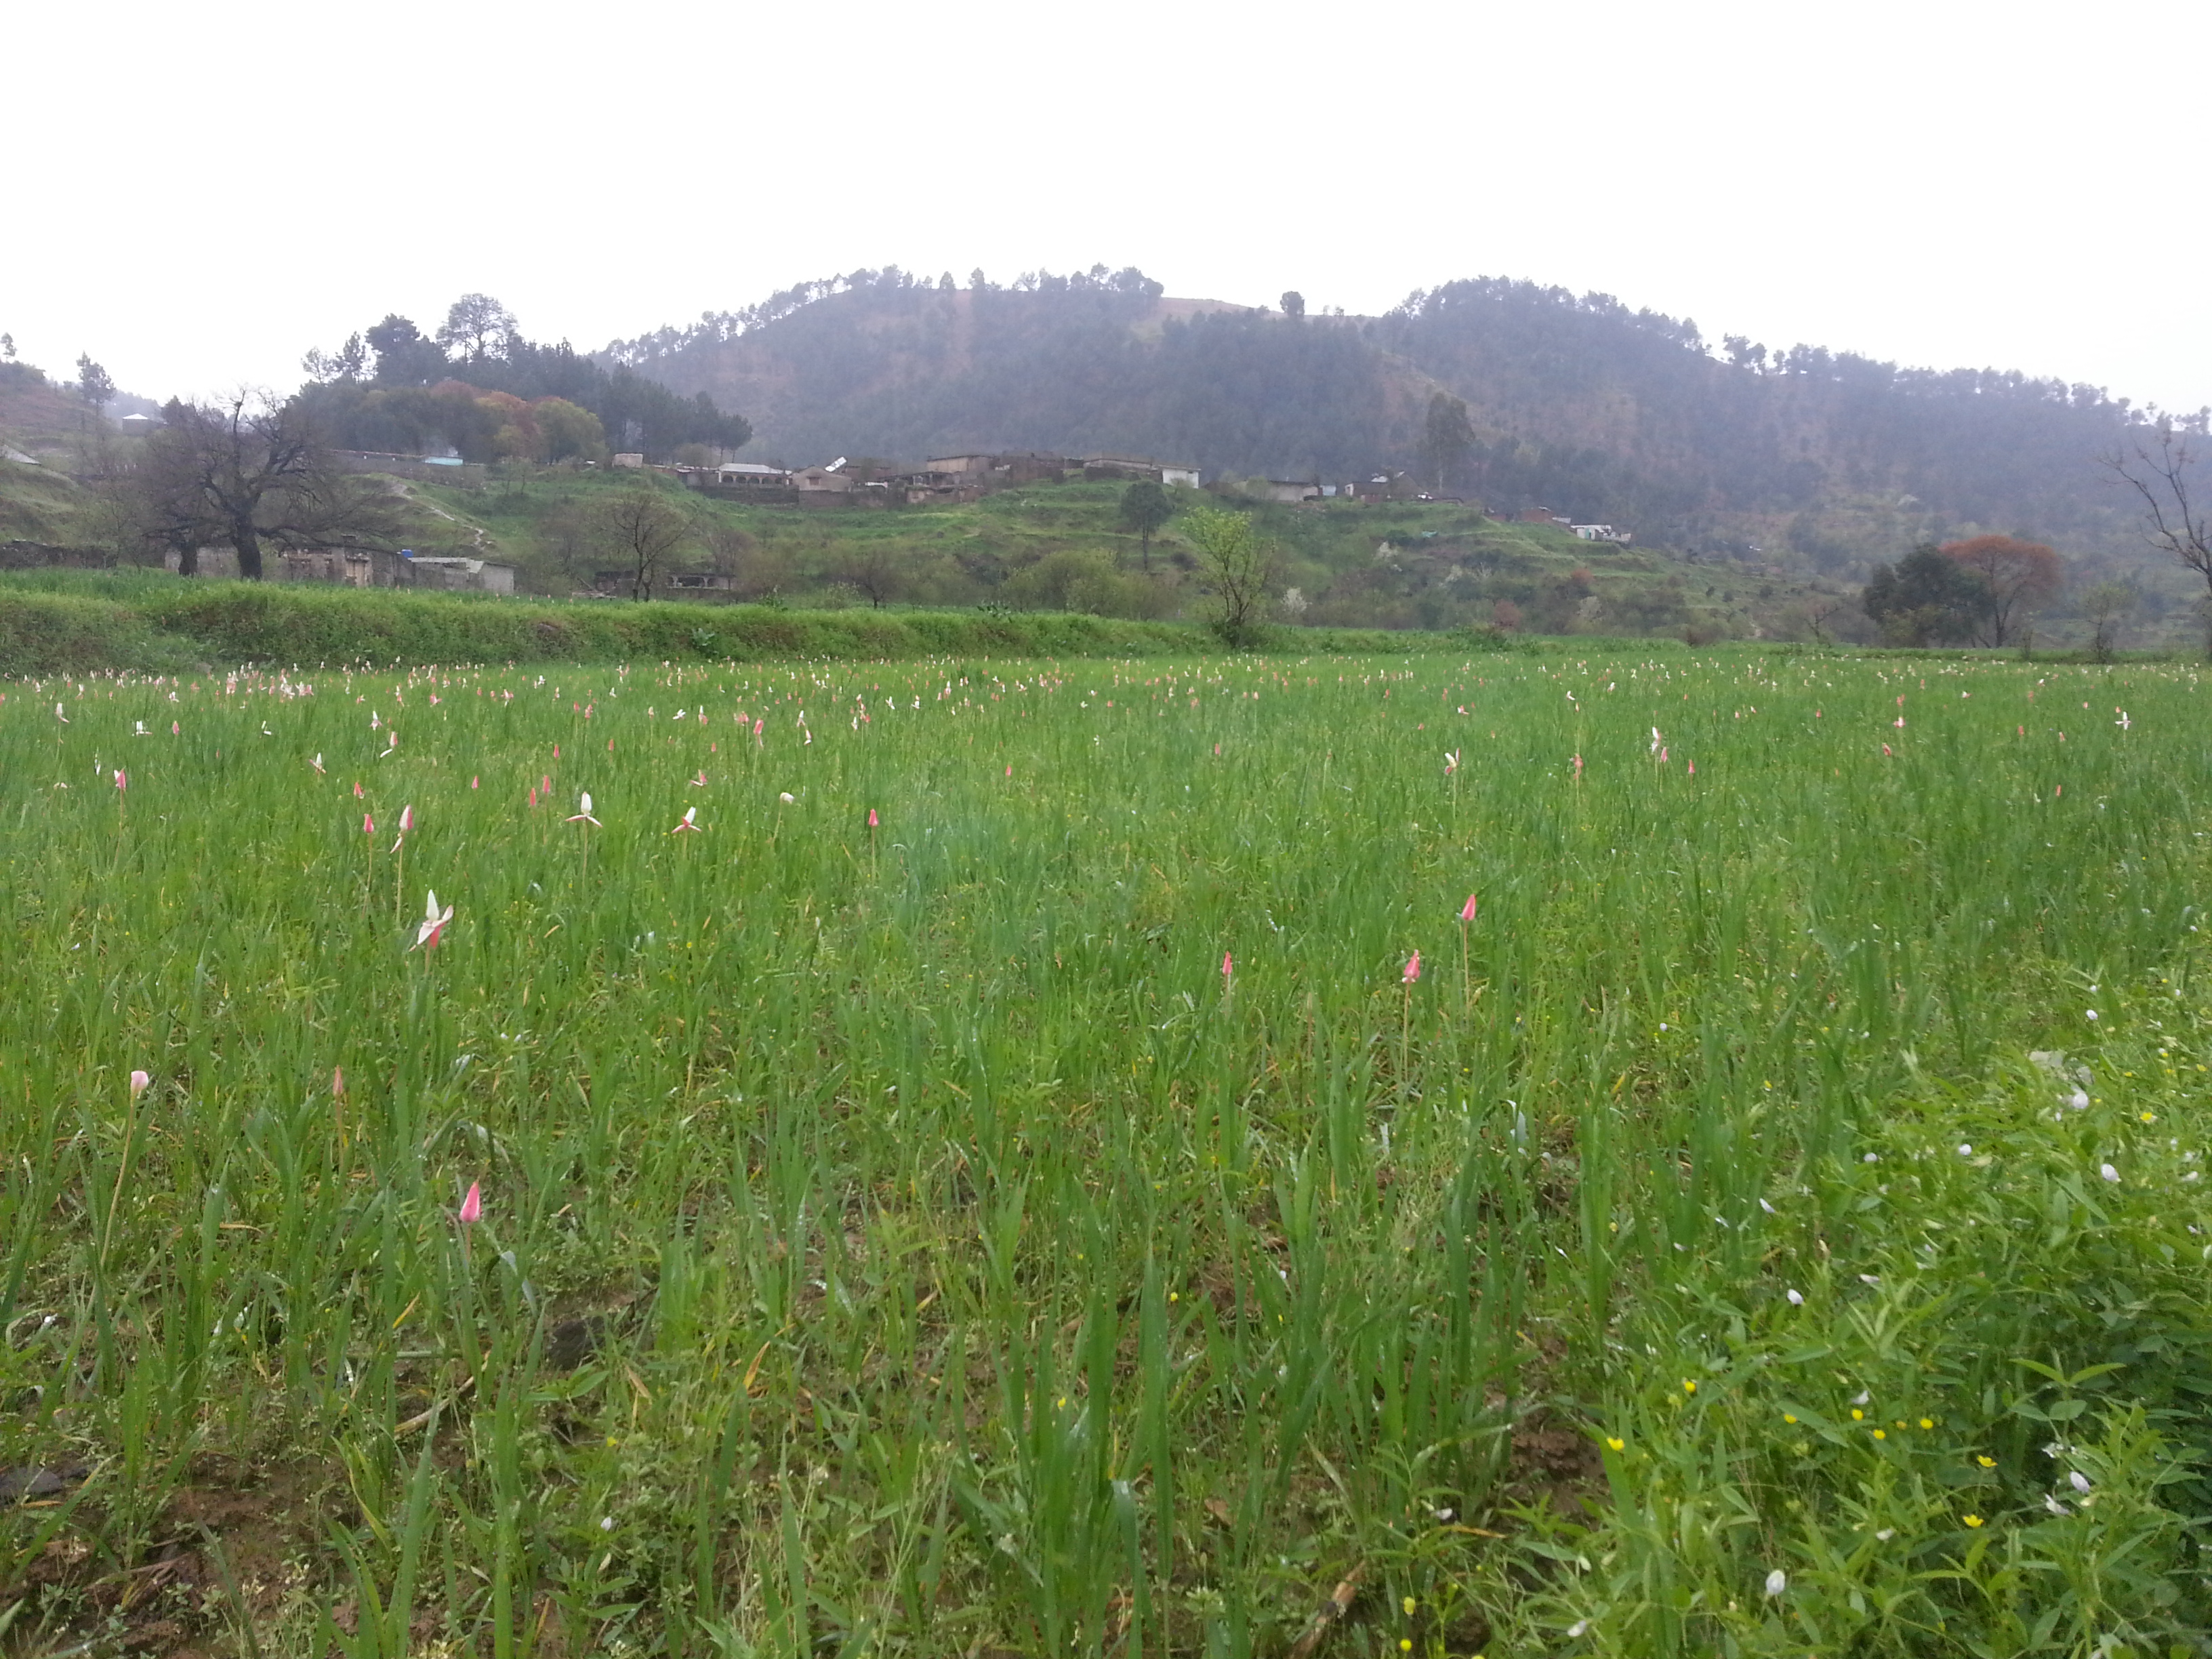 Ghanttol flowers in the field